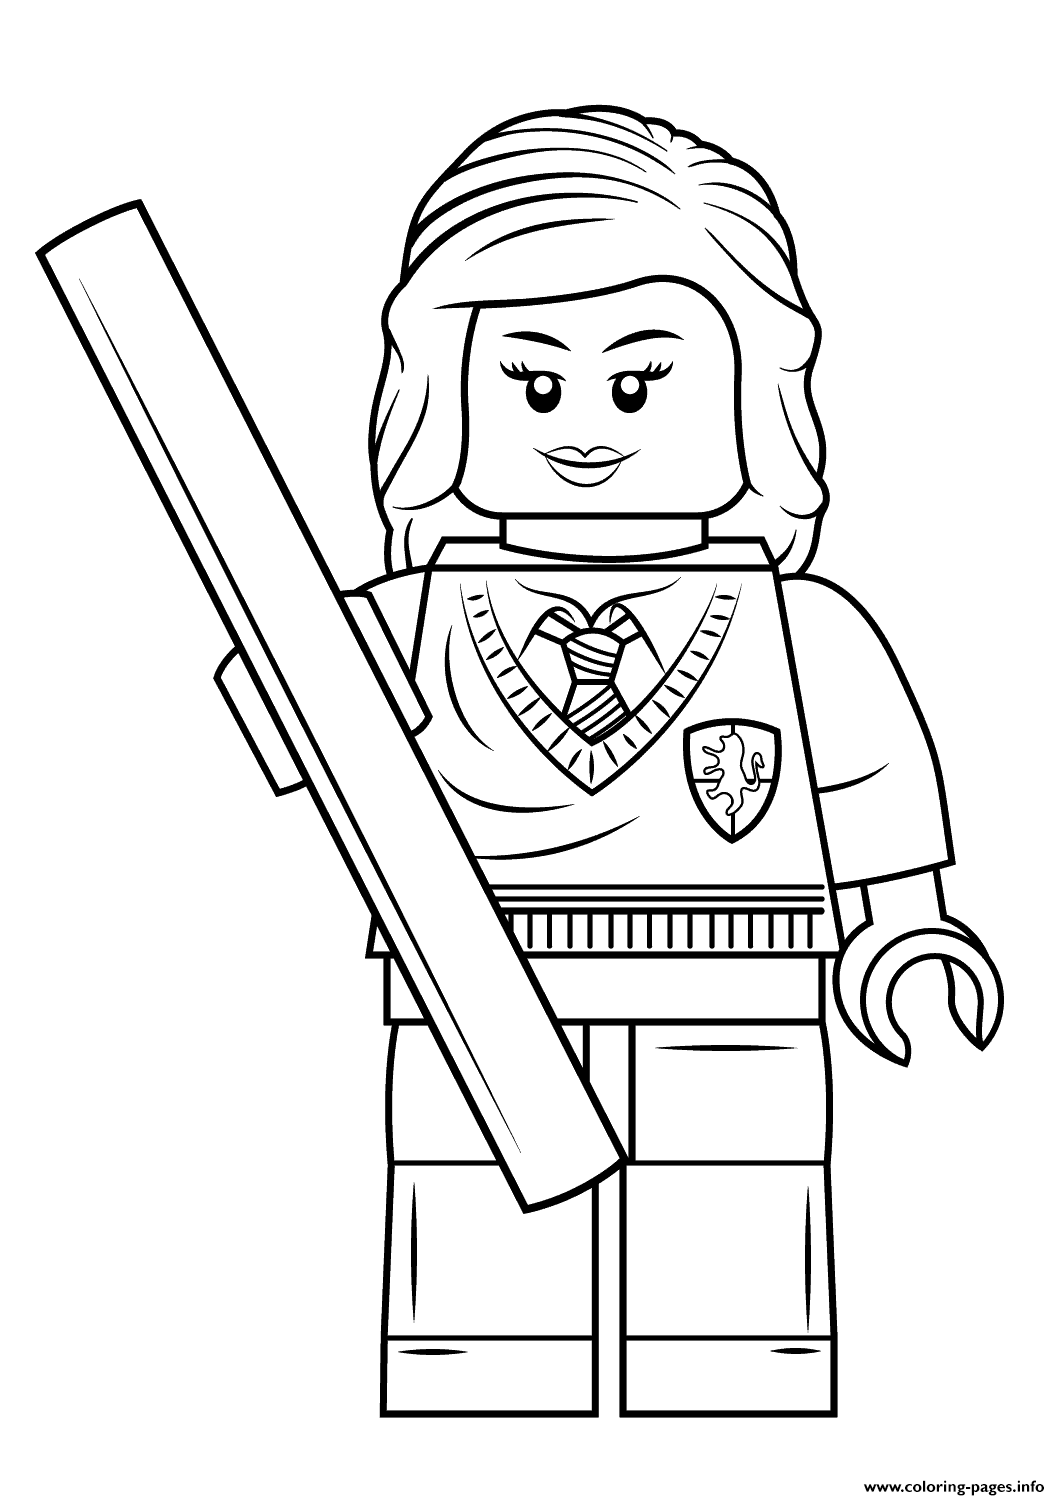 1060x1500 Harry Potter Coloring Pages